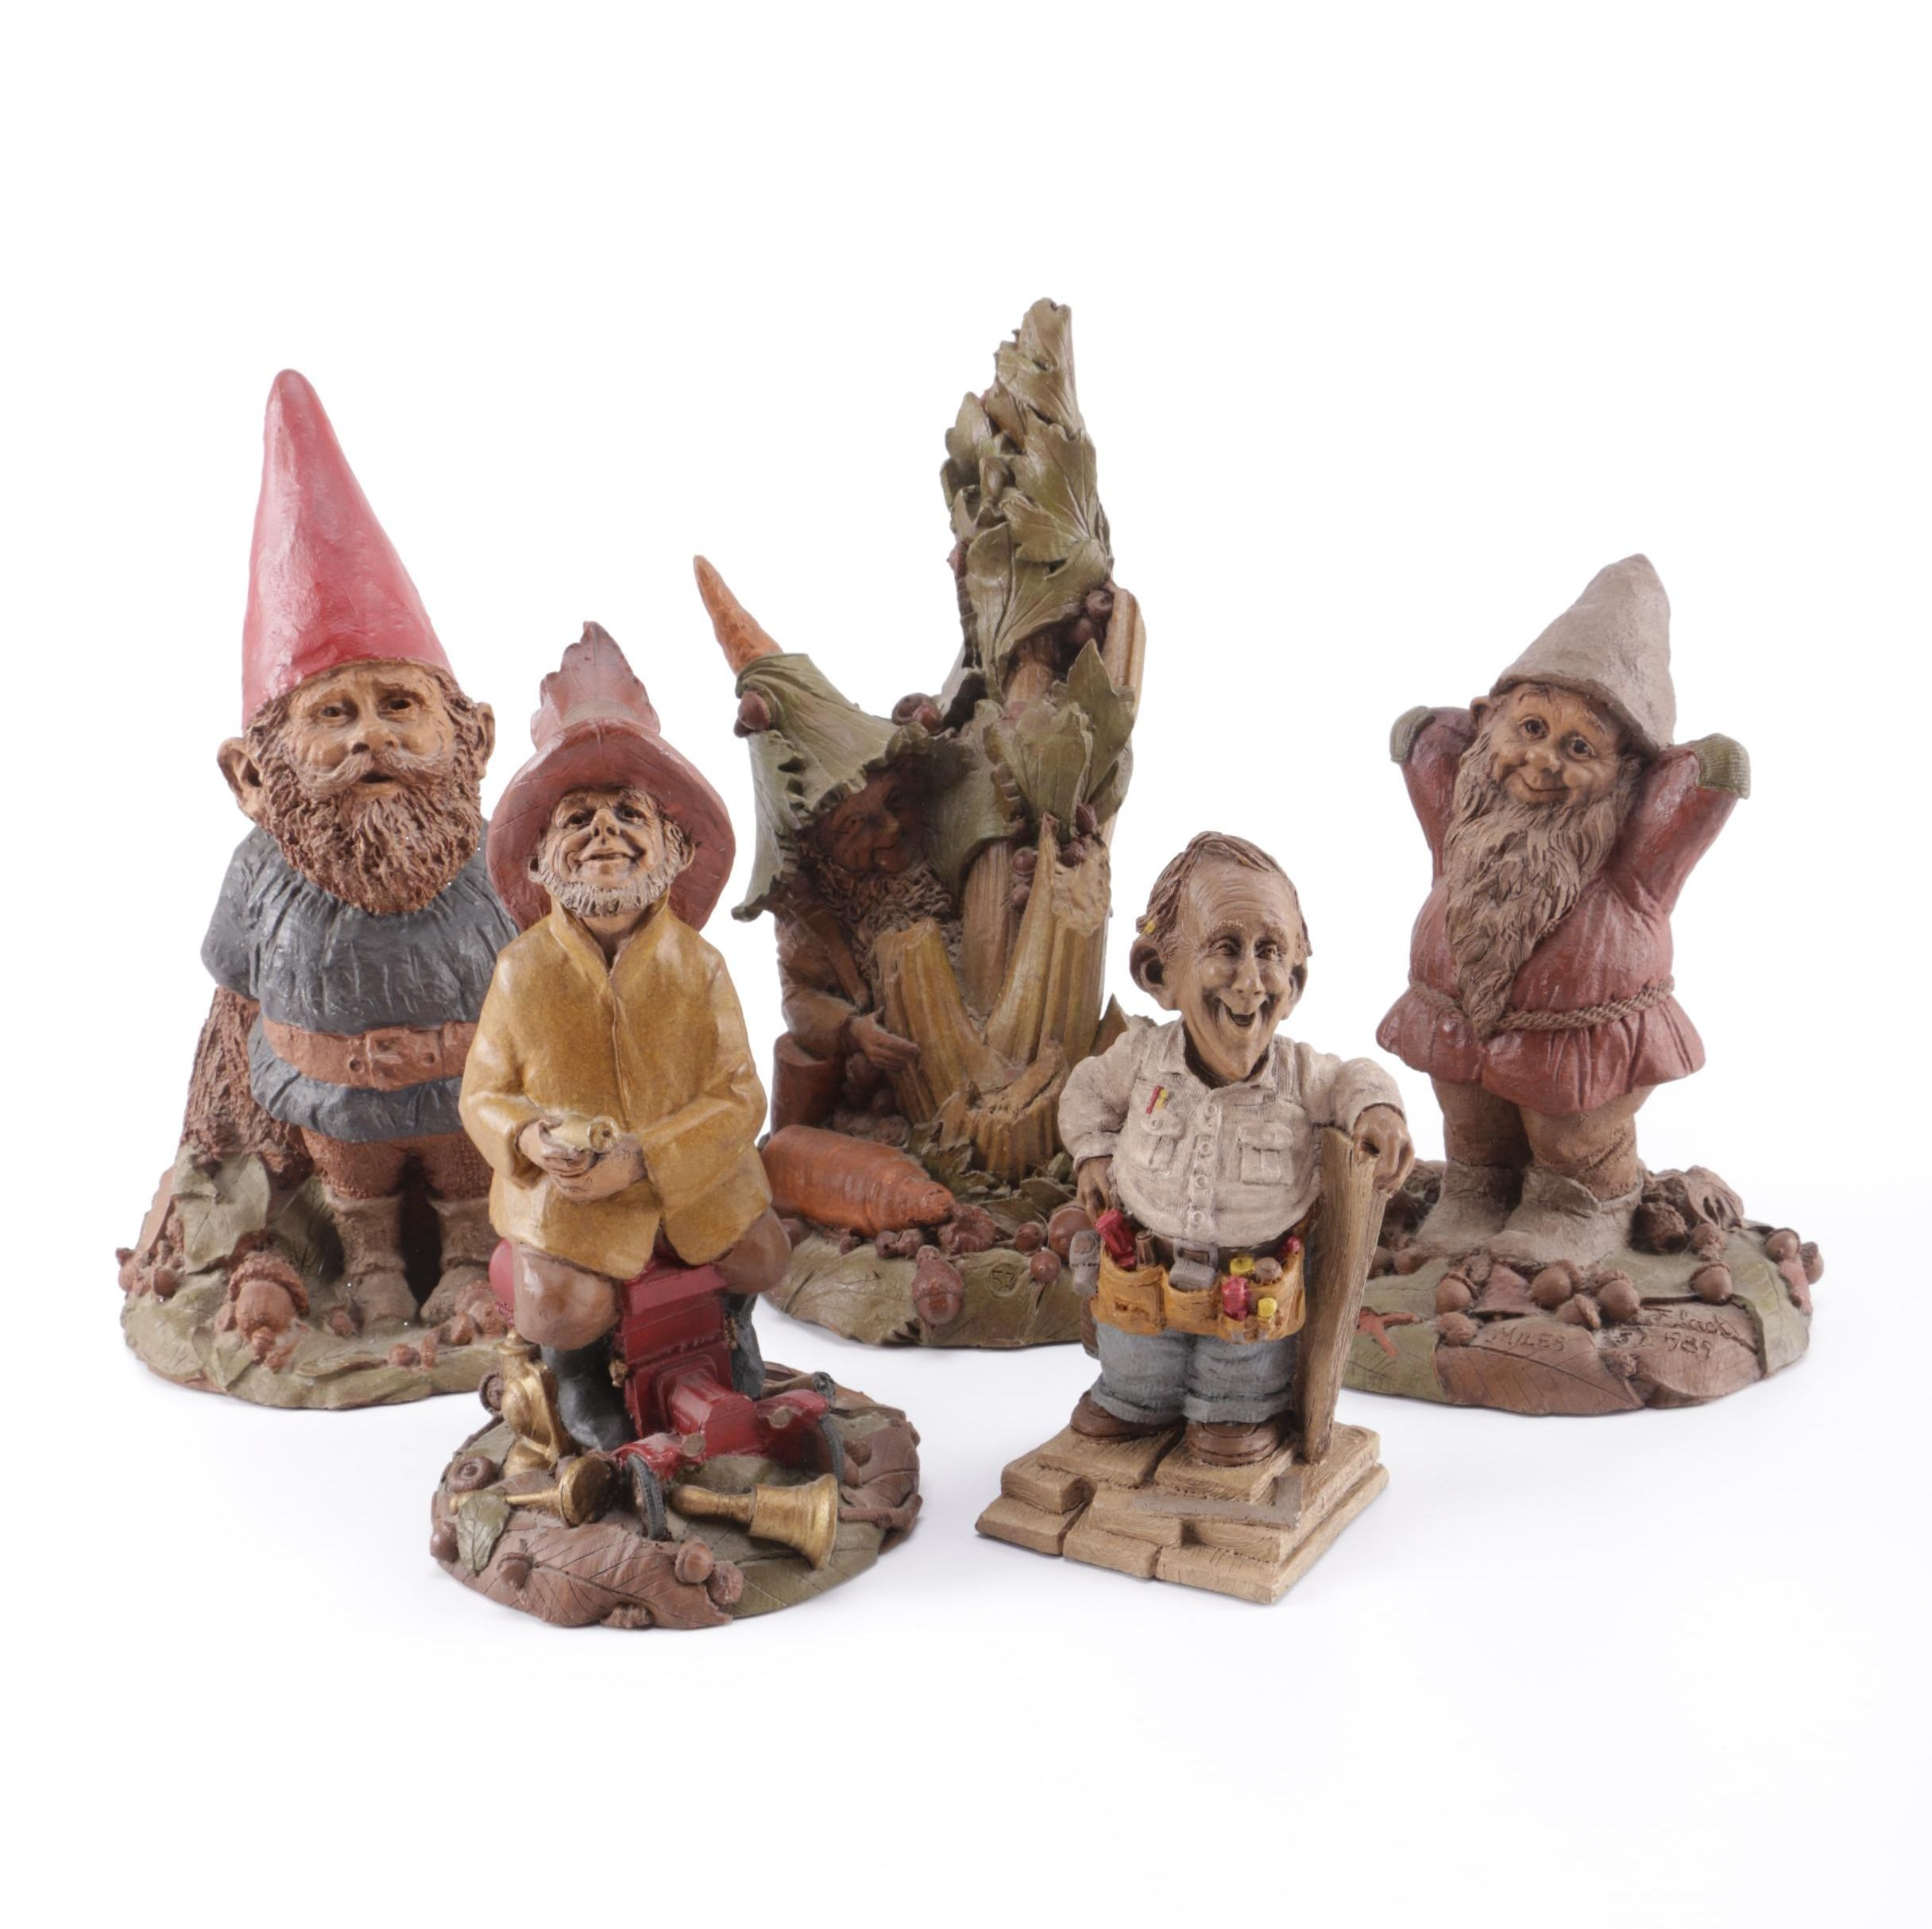 Collection of Tom Clark Gnomes and Figurines